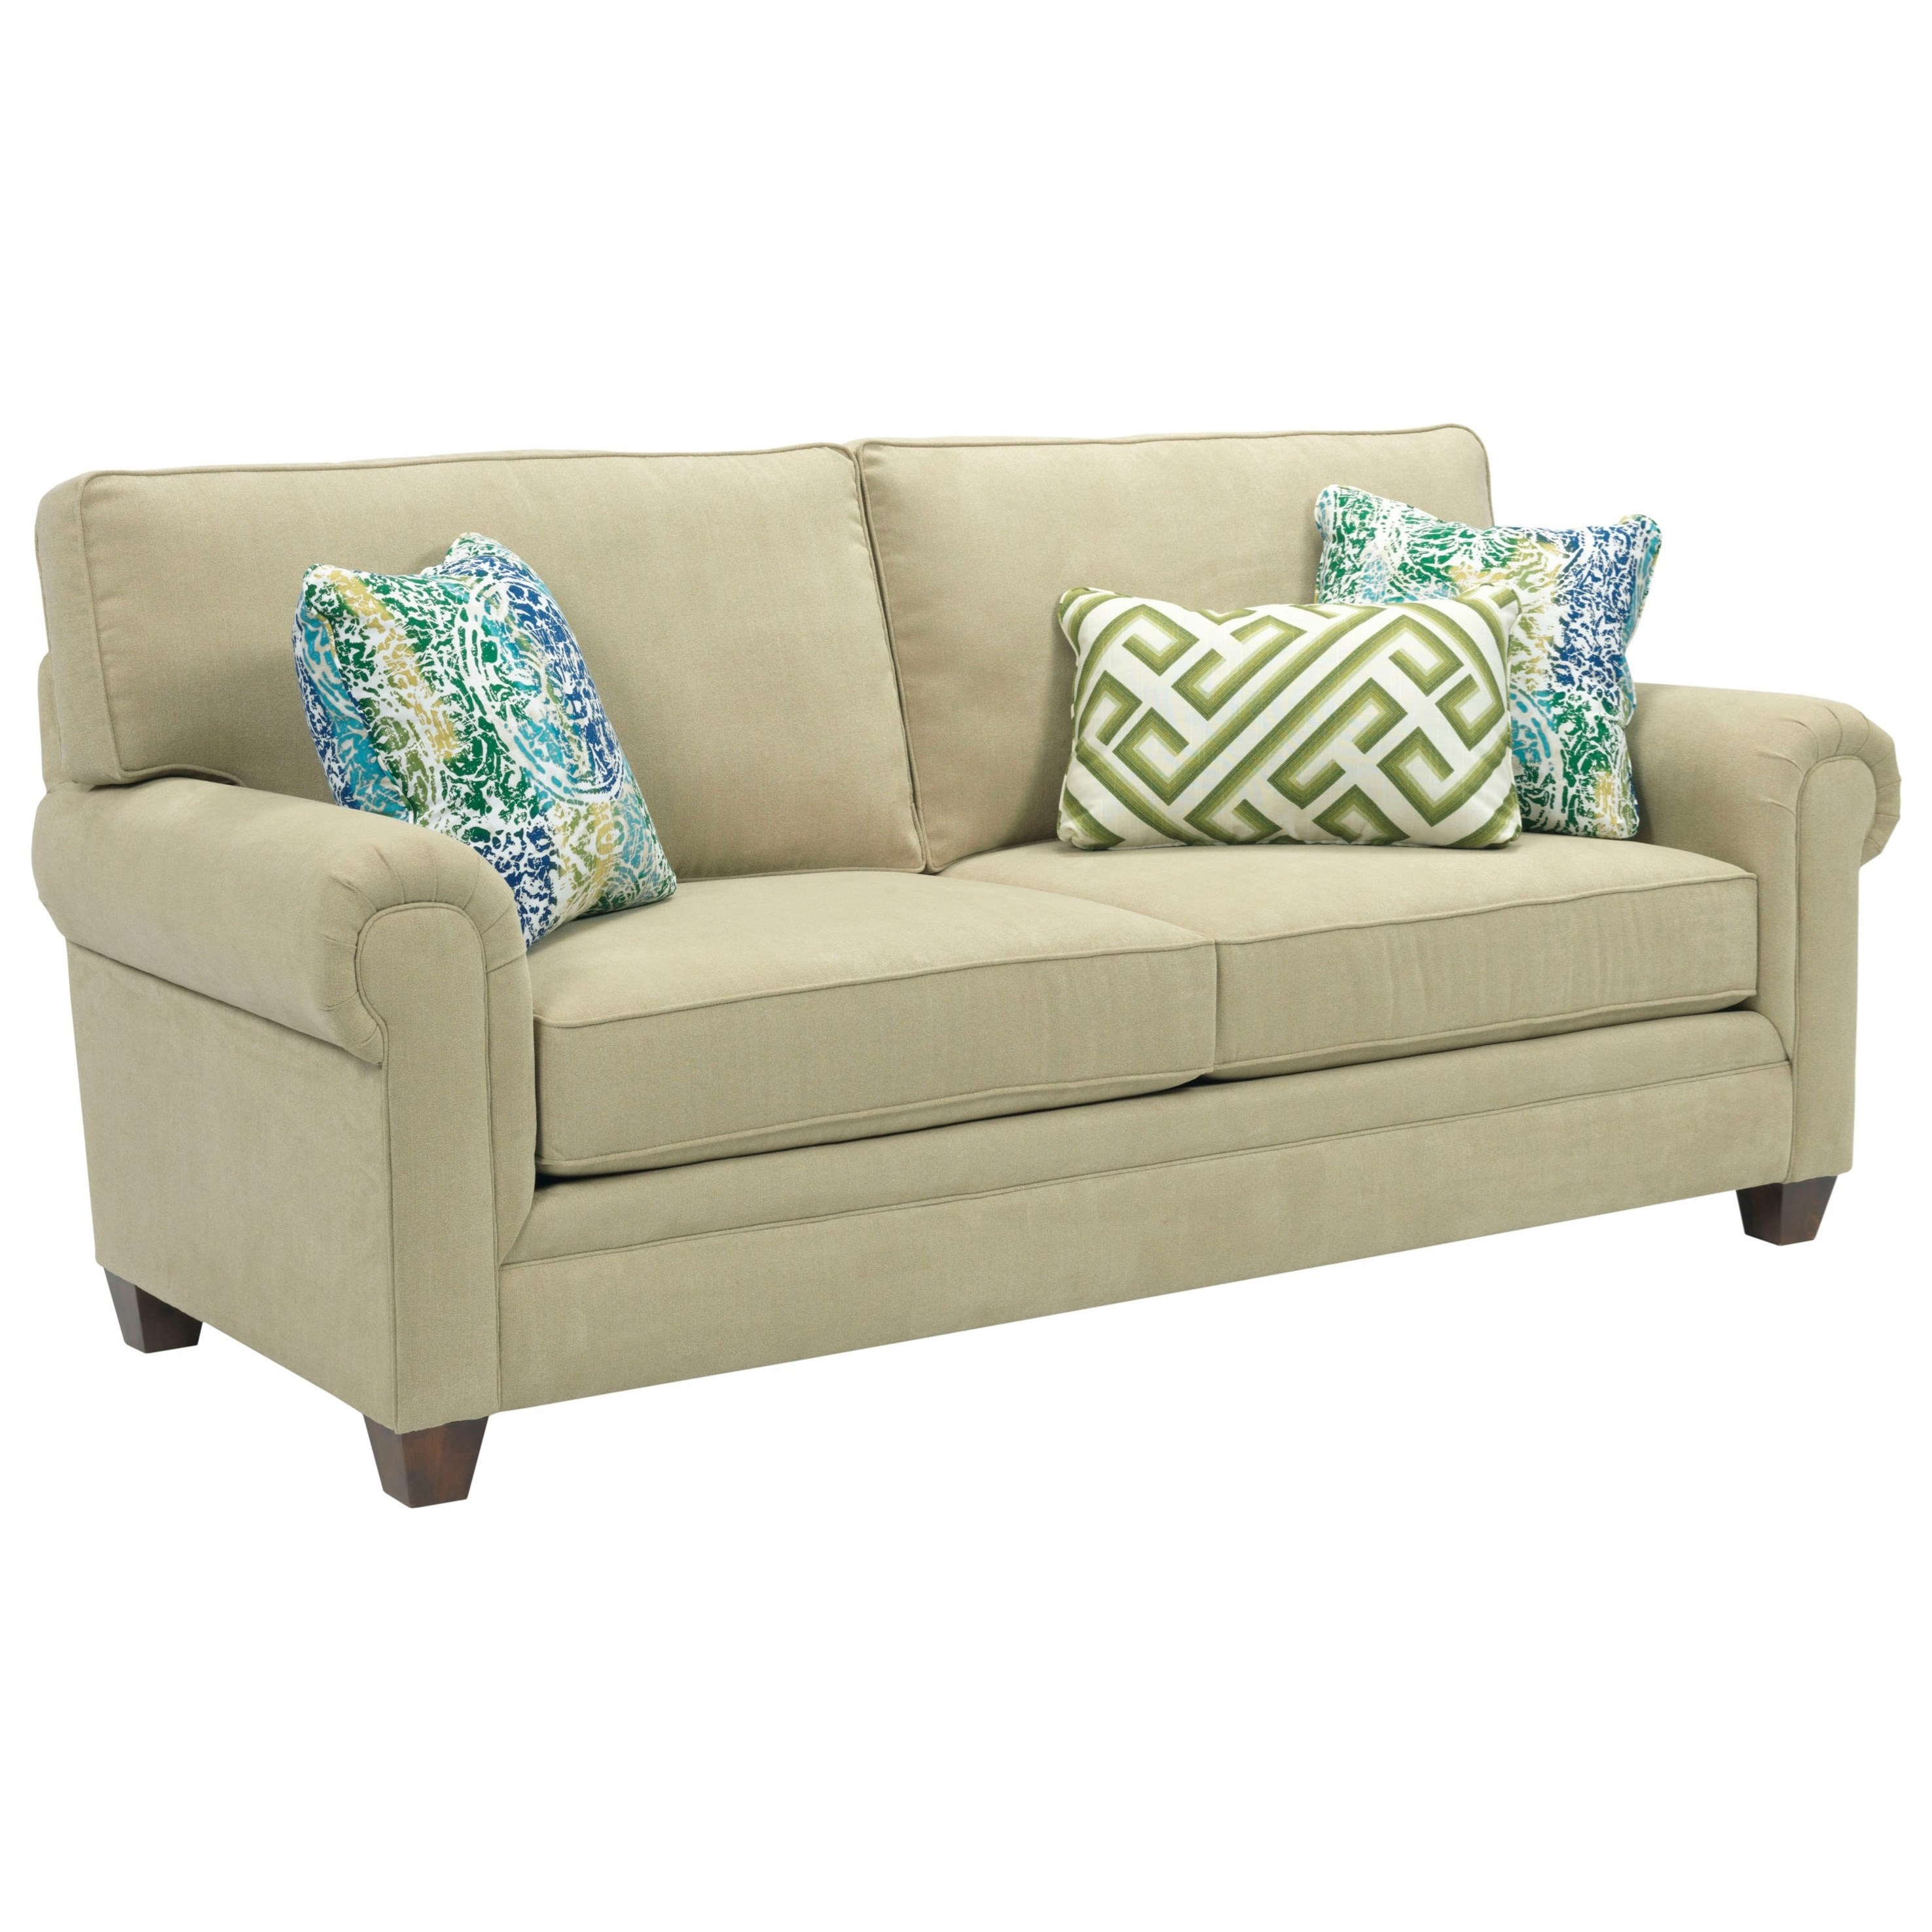 Broyhill Furniture Monica Transitional Queen Air Dream Sleeper Sofa With Rolled Arms Knight